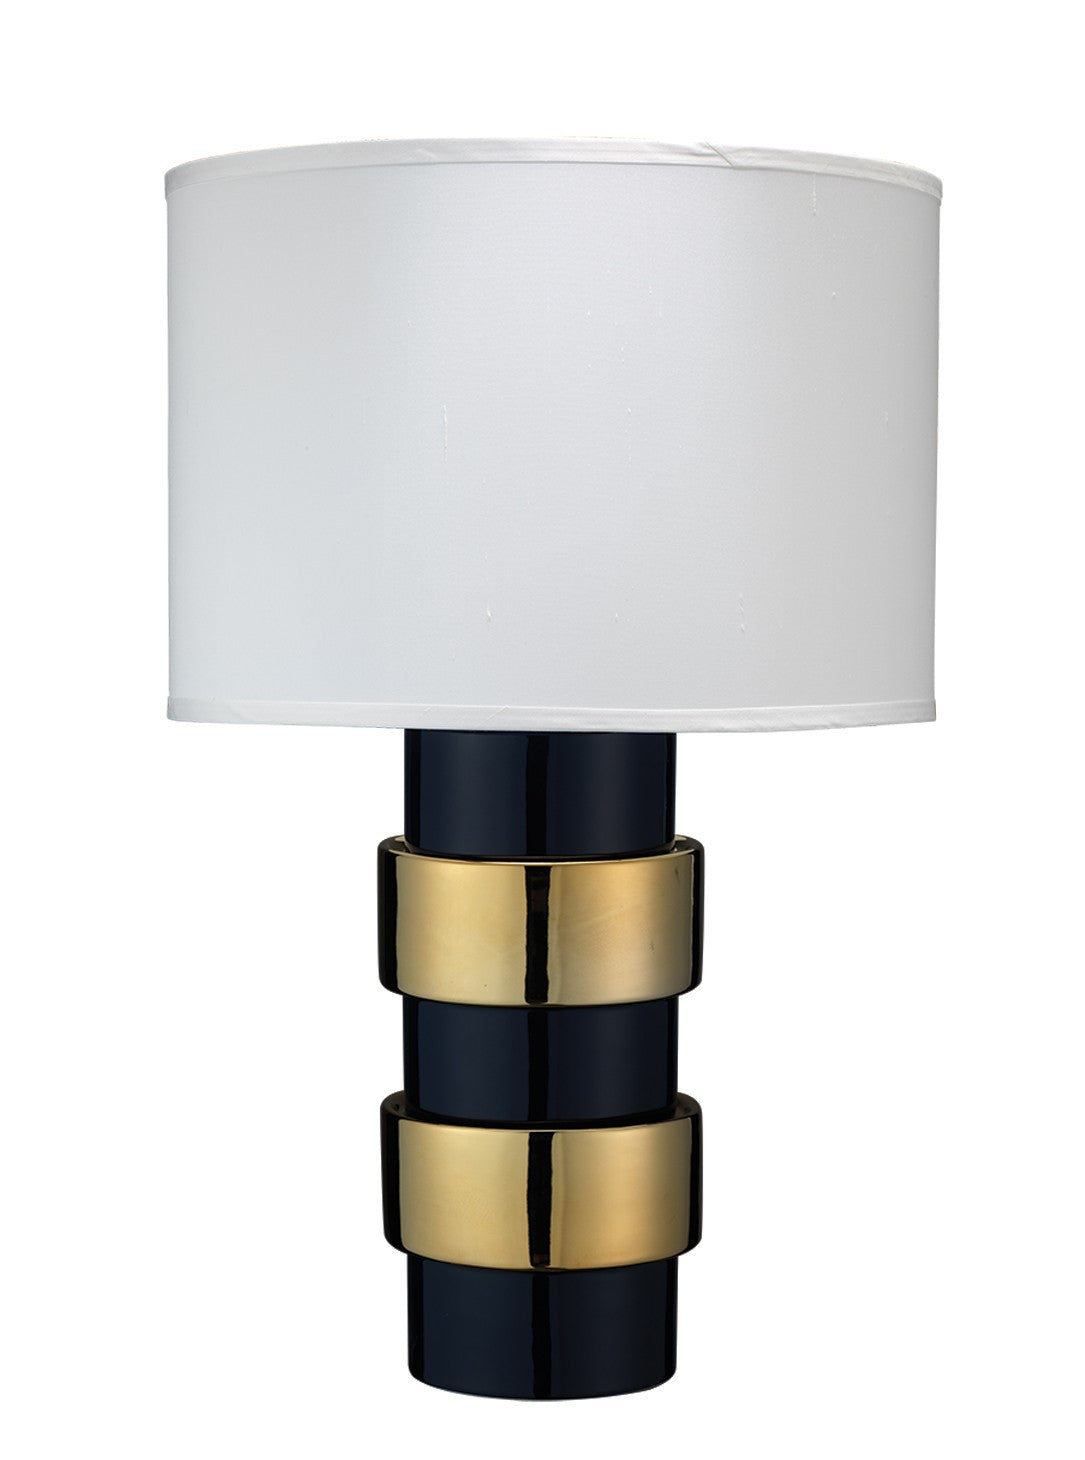 Nash table lamp jamie young luxe home philadelphia nash table lamp jamie young geotapseo Gallery